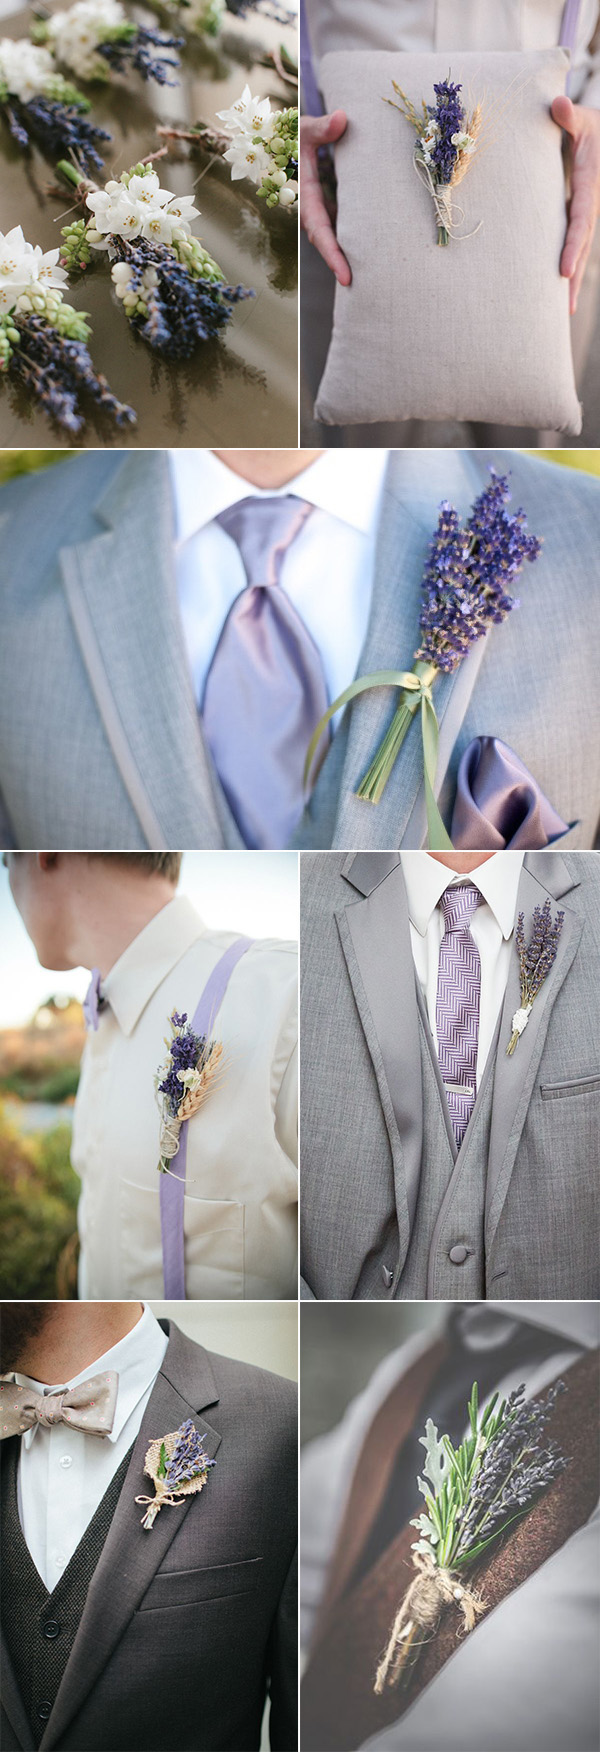 chic-rusitc-lavender-wedding-boutonnieres-for-guys